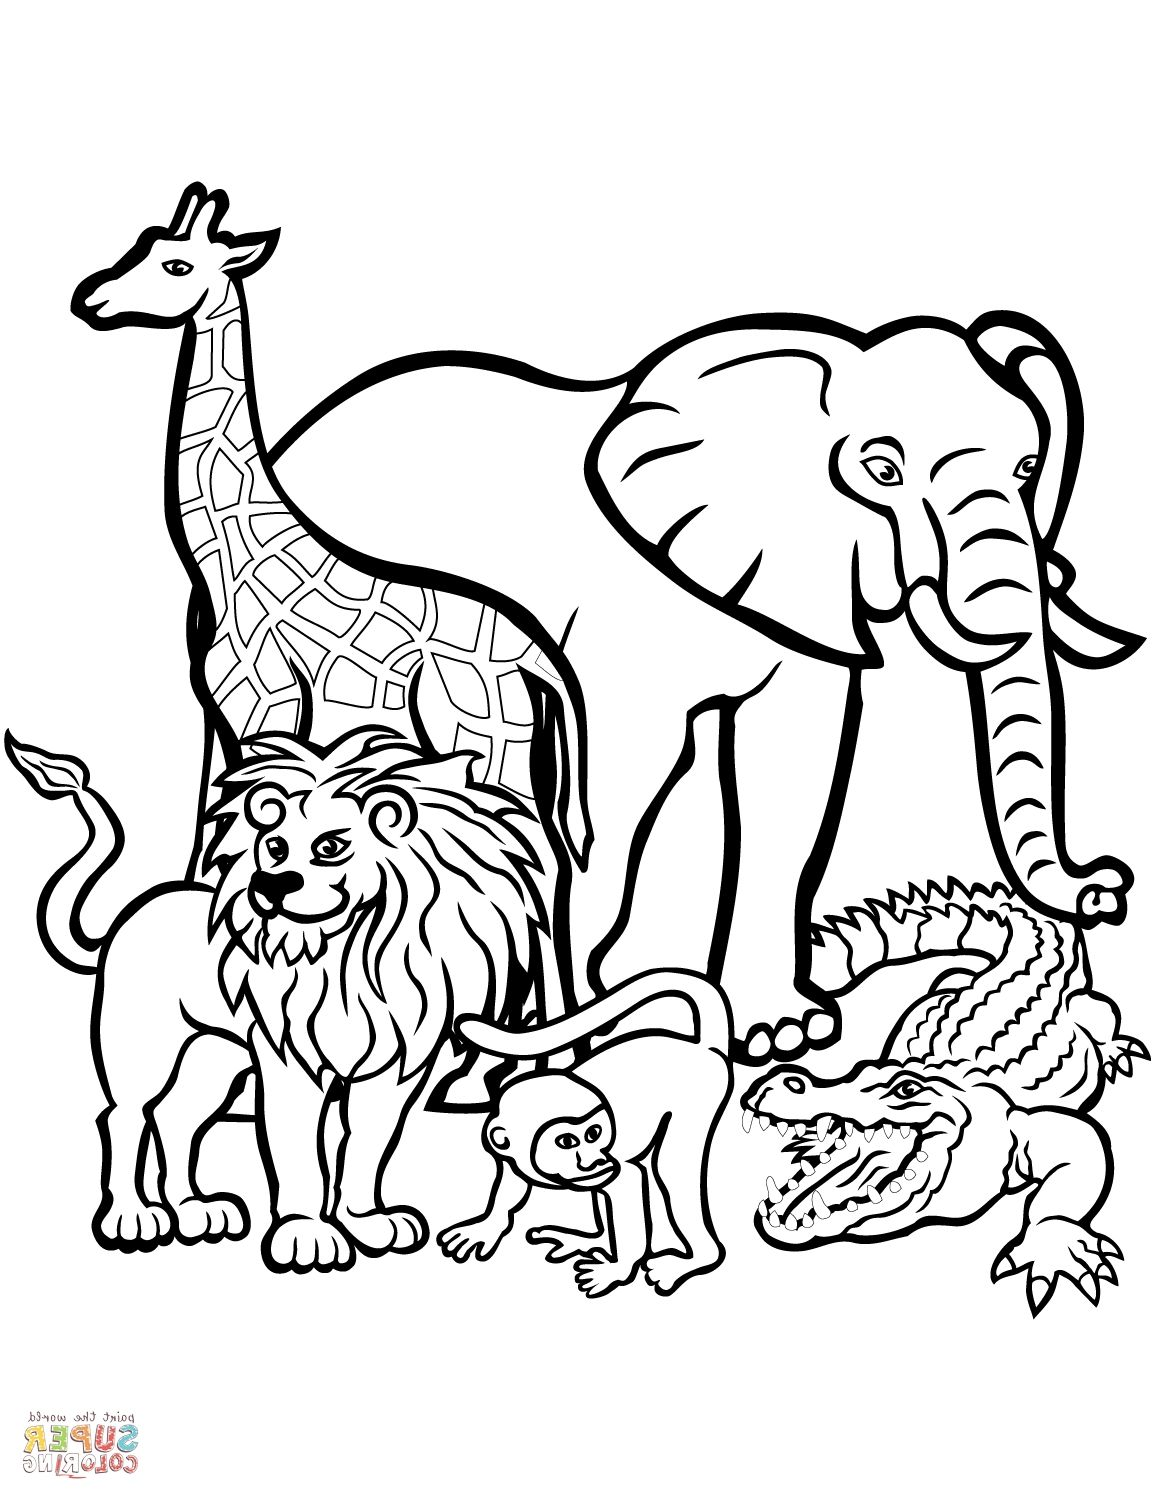 Free Animal Coloring Pages Zoo Coloring Pages Zoo Animal Coloring Pages Animal Coloring Pages [ 1500 x 1159 Pixel ]